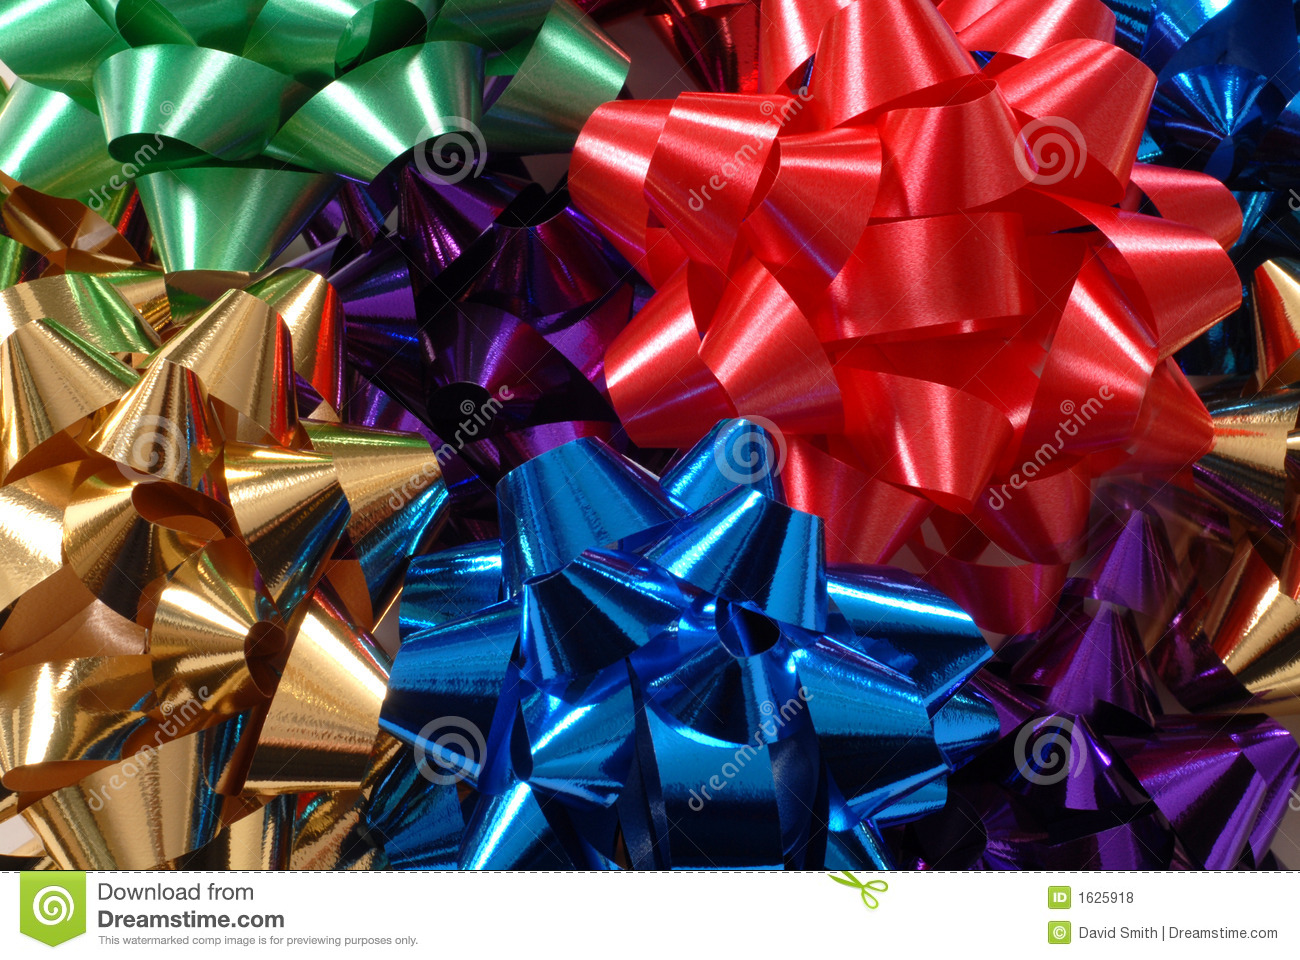 Green Christmas Bow Background Graphics: Colorful Christmas Bows Forming A Vivid Background Royalty